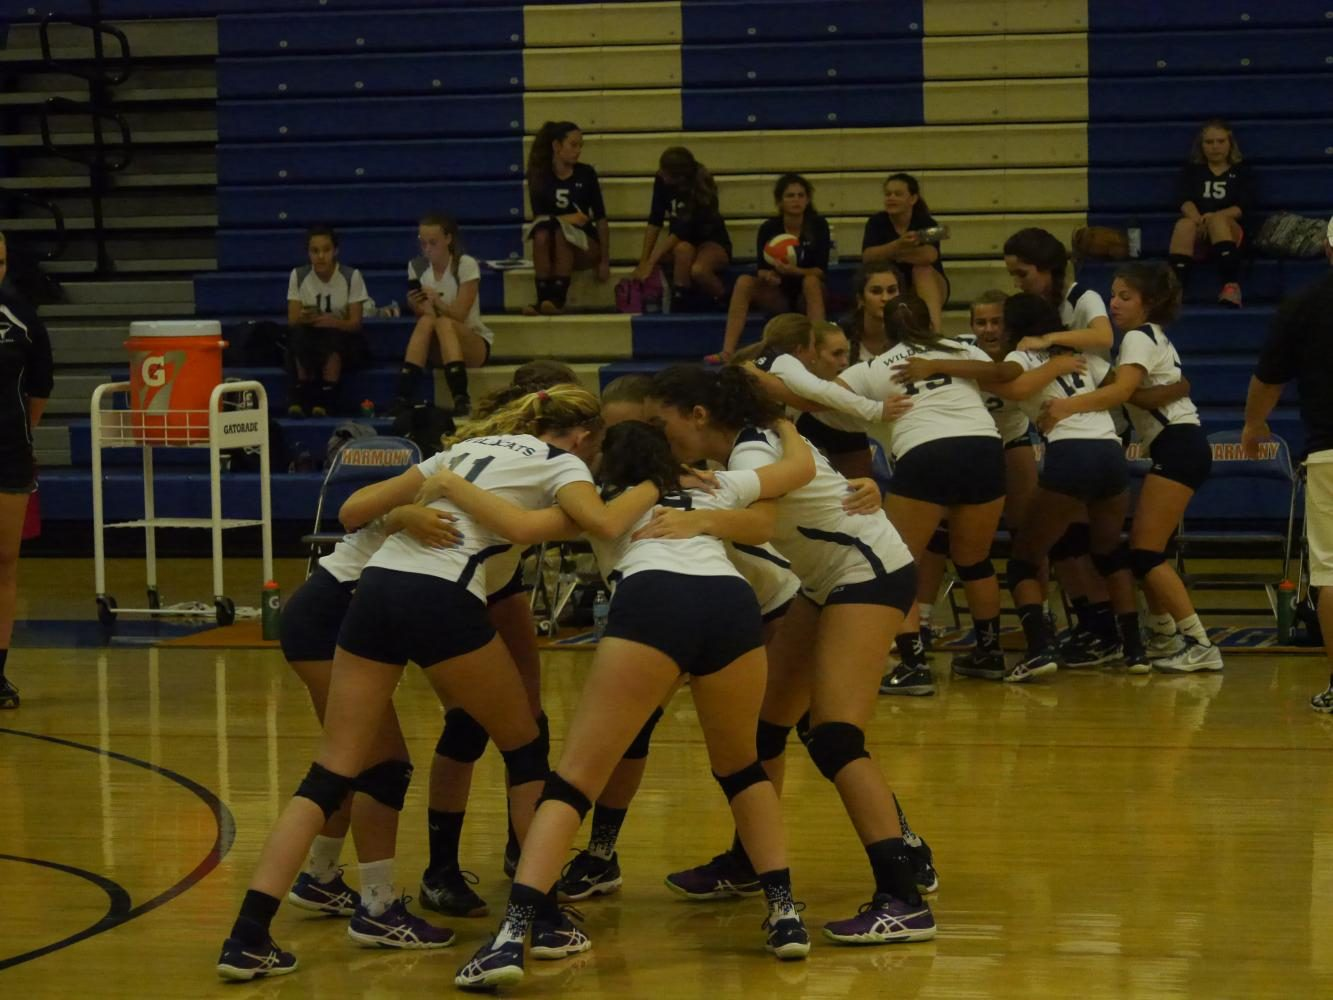 The+varsity+volleyball+team+gathers+together+before+an+important+game.+